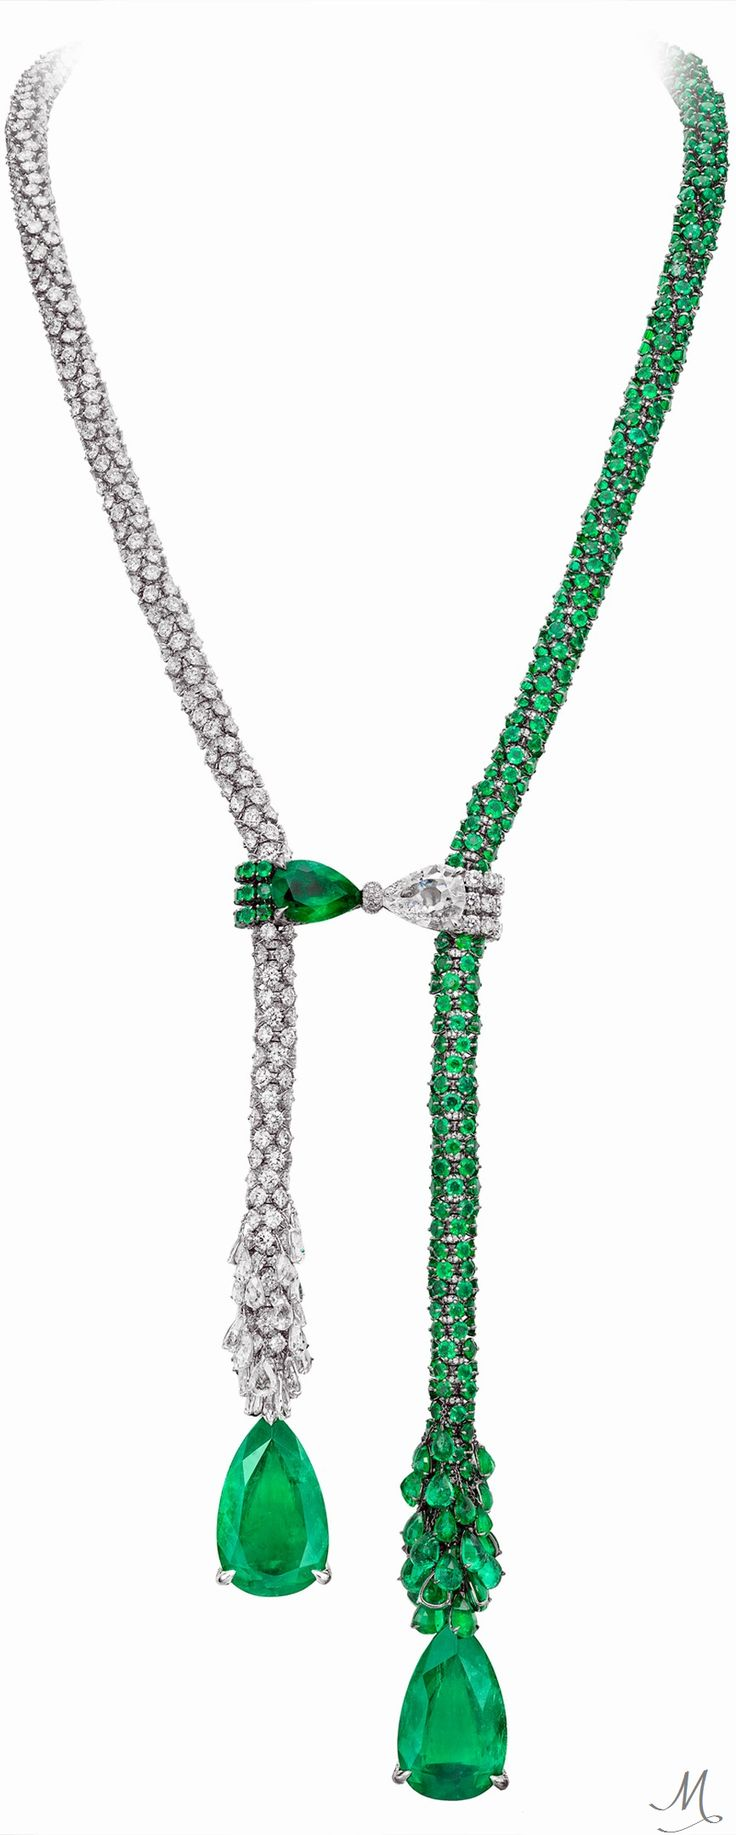 One Of A Kind Boghossian Masterpieces Necklace From The